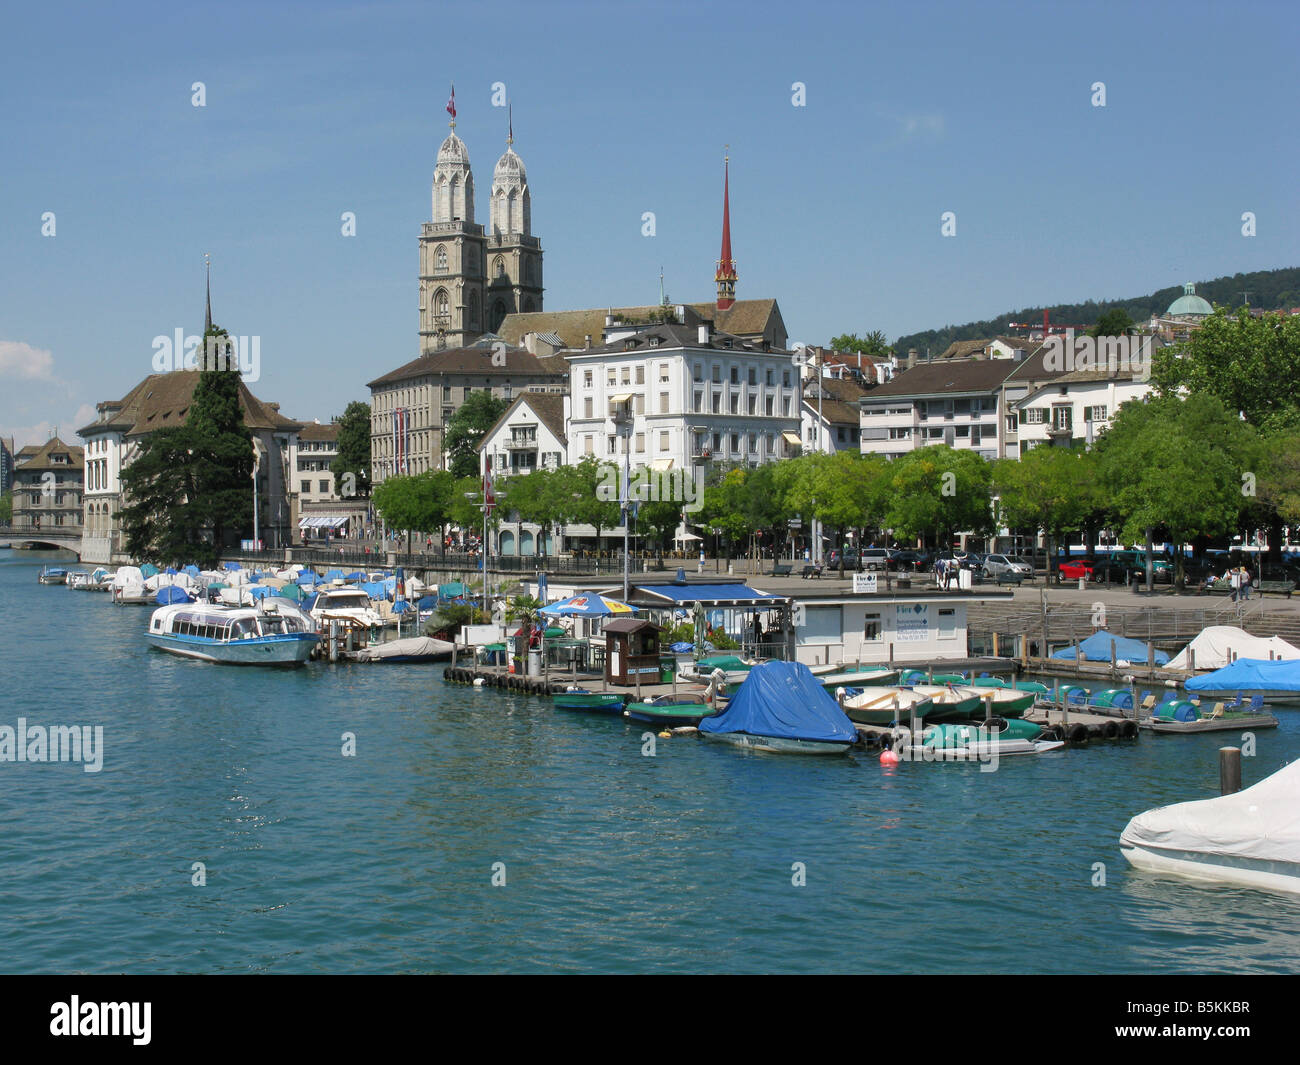 The Zurich Grossmünster with its twin towers near the river Limmat - Stock Image